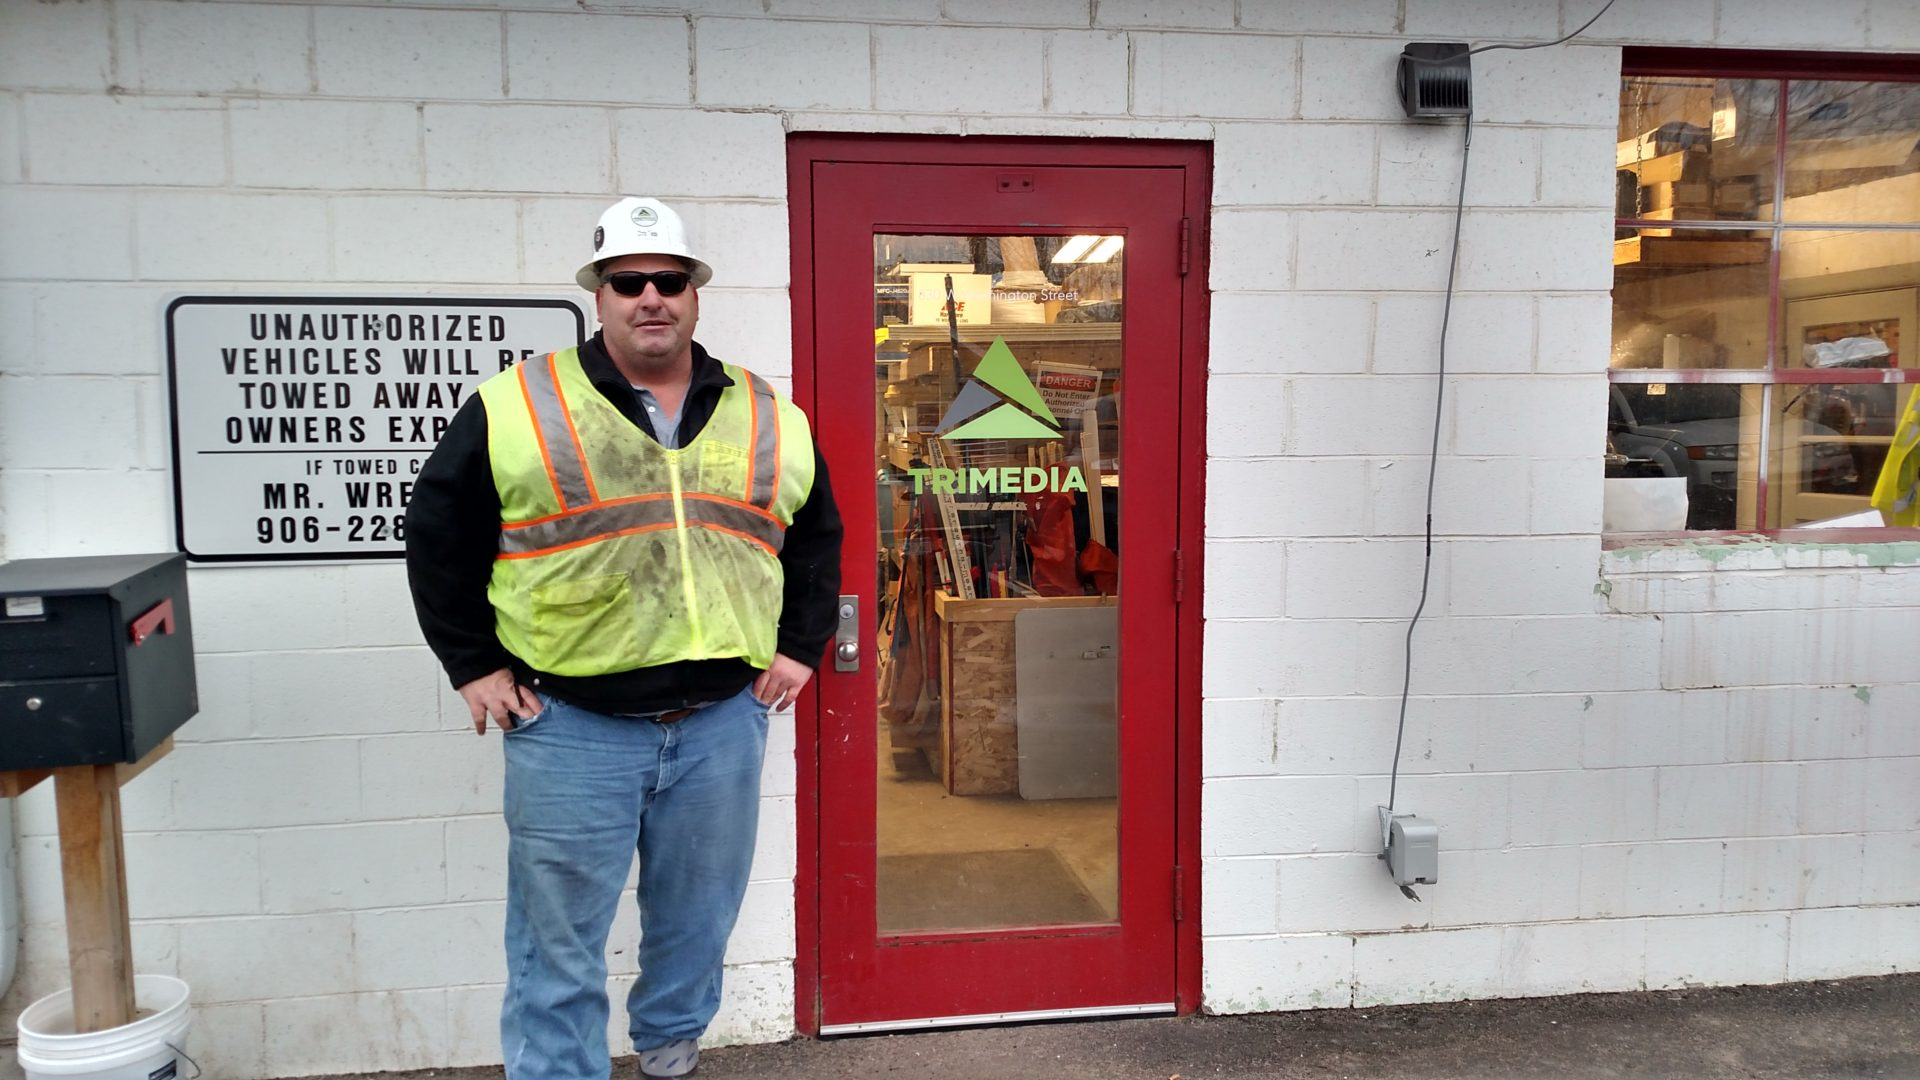 Employee Spotlight: Chris Tiede